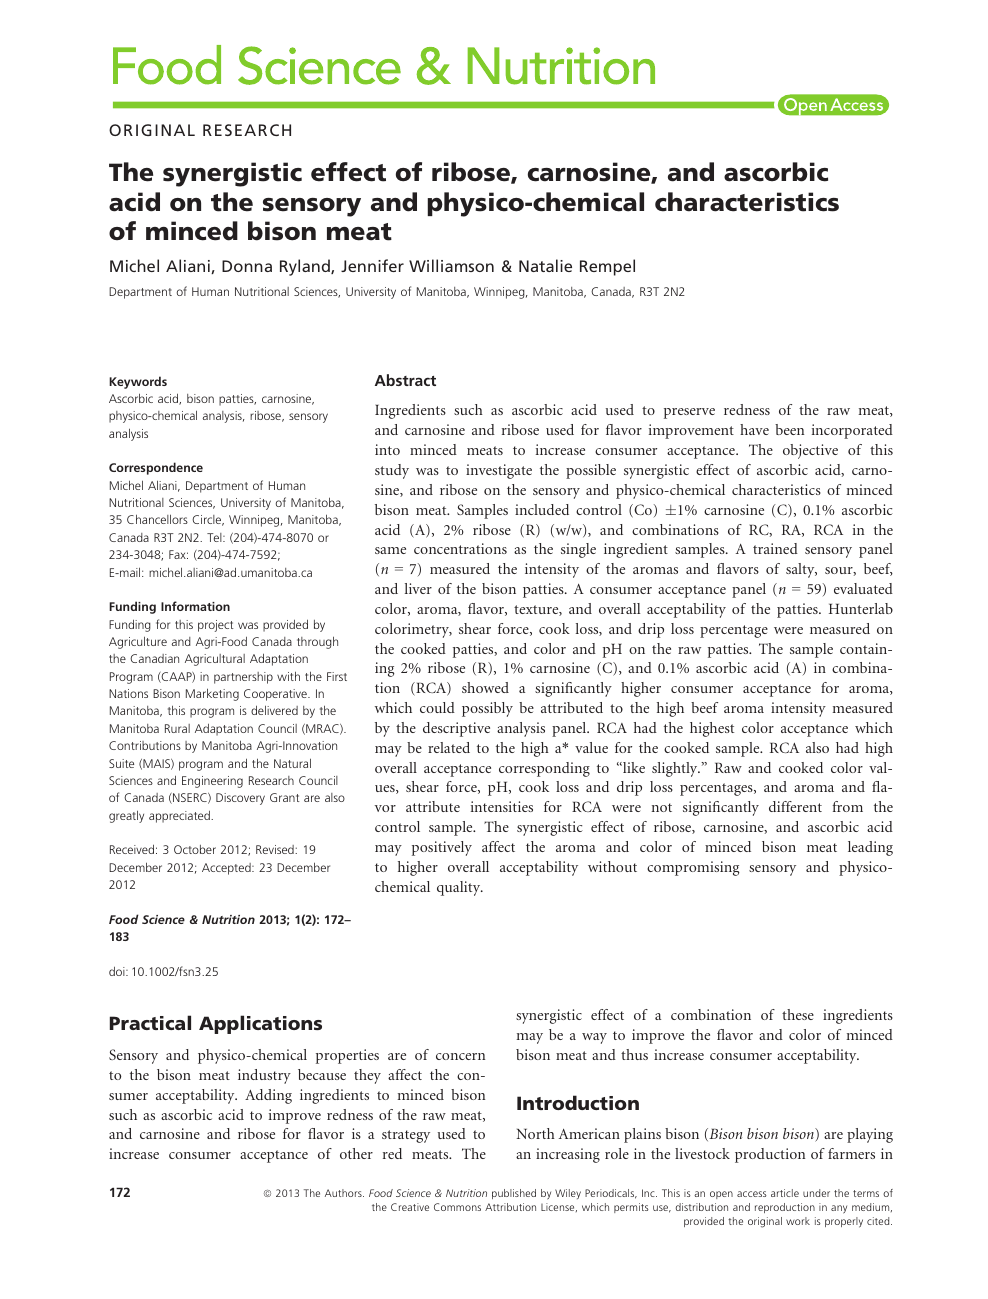 The synergistic effect of ribose, carnosine, and ascorbic acid on ...